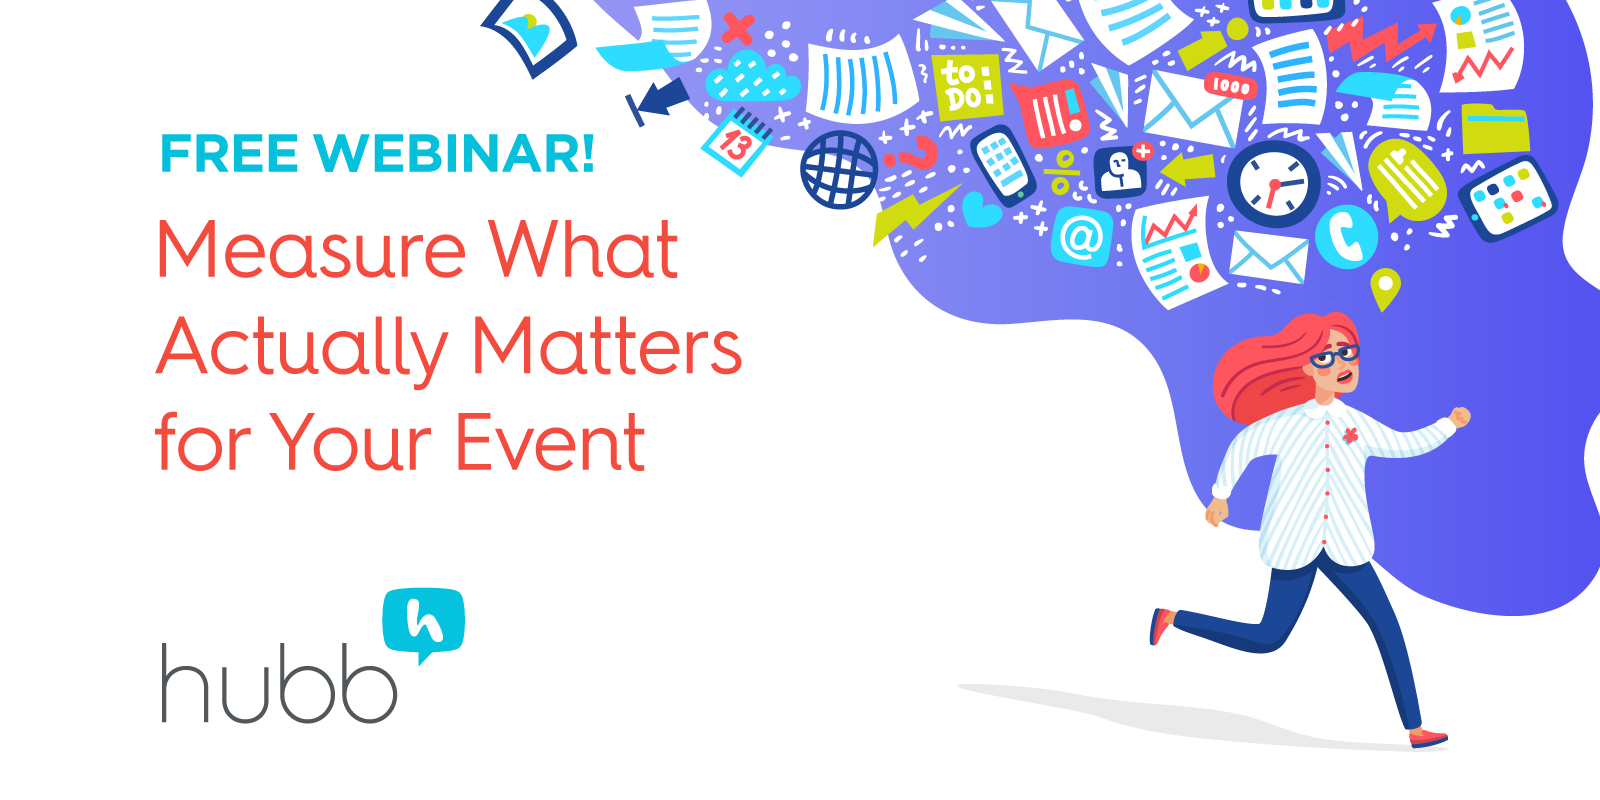 Measure-What-Matters-Your-Event-Webinar-Social-1